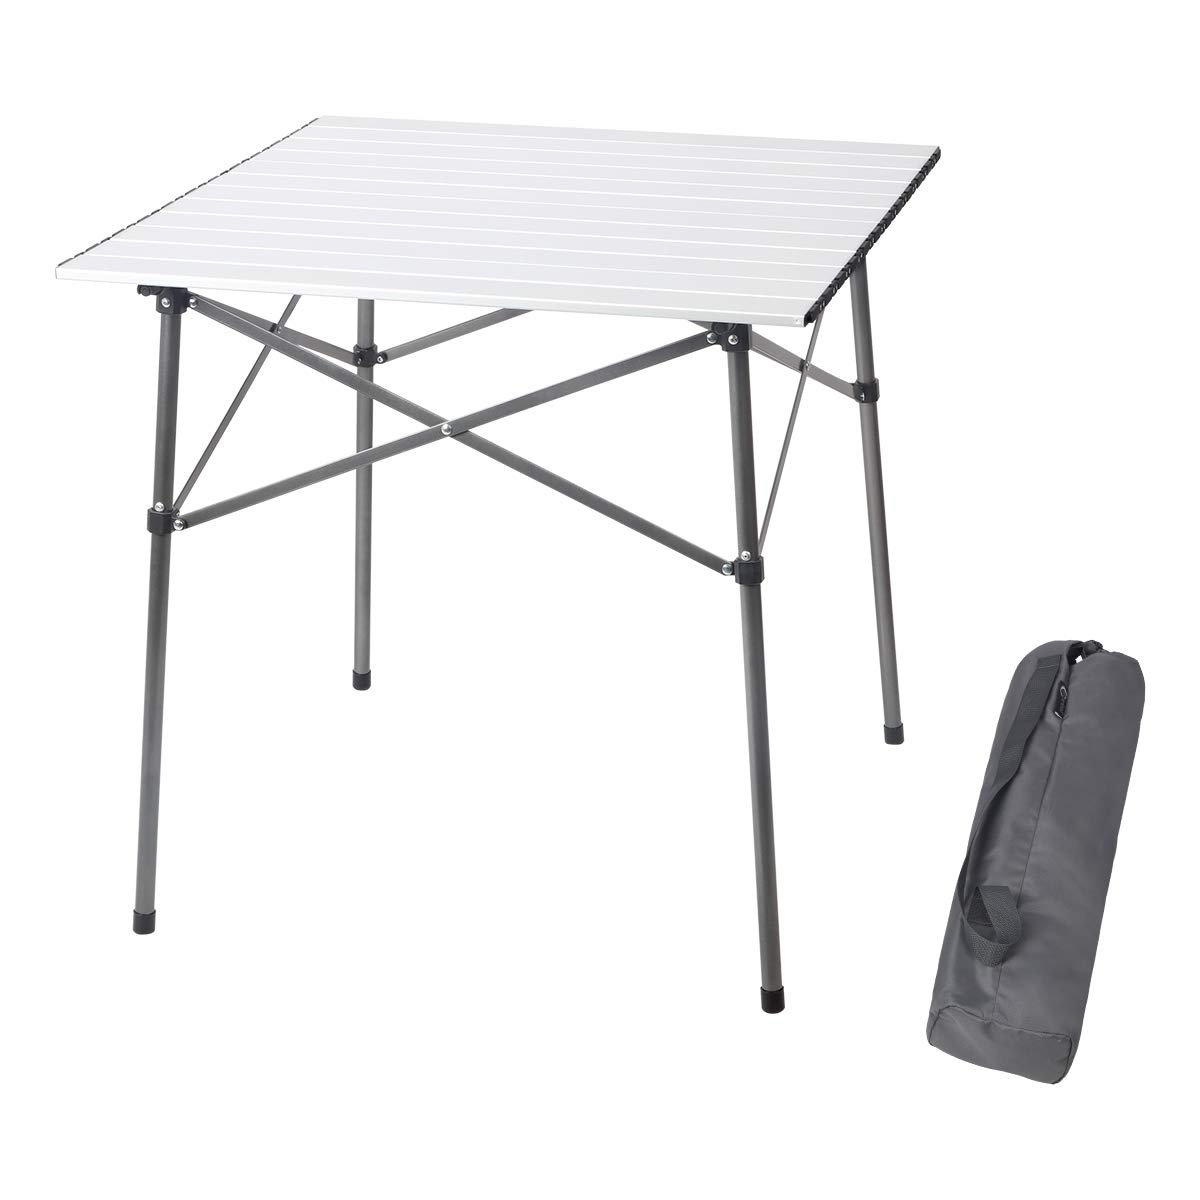 Bbq Garden Supplies Strict Aluminum Alloy Barbecue Outdoor Ultralight Portable Folding Desk For Camping Picnic Travel Hiking Kitchen 100% Original